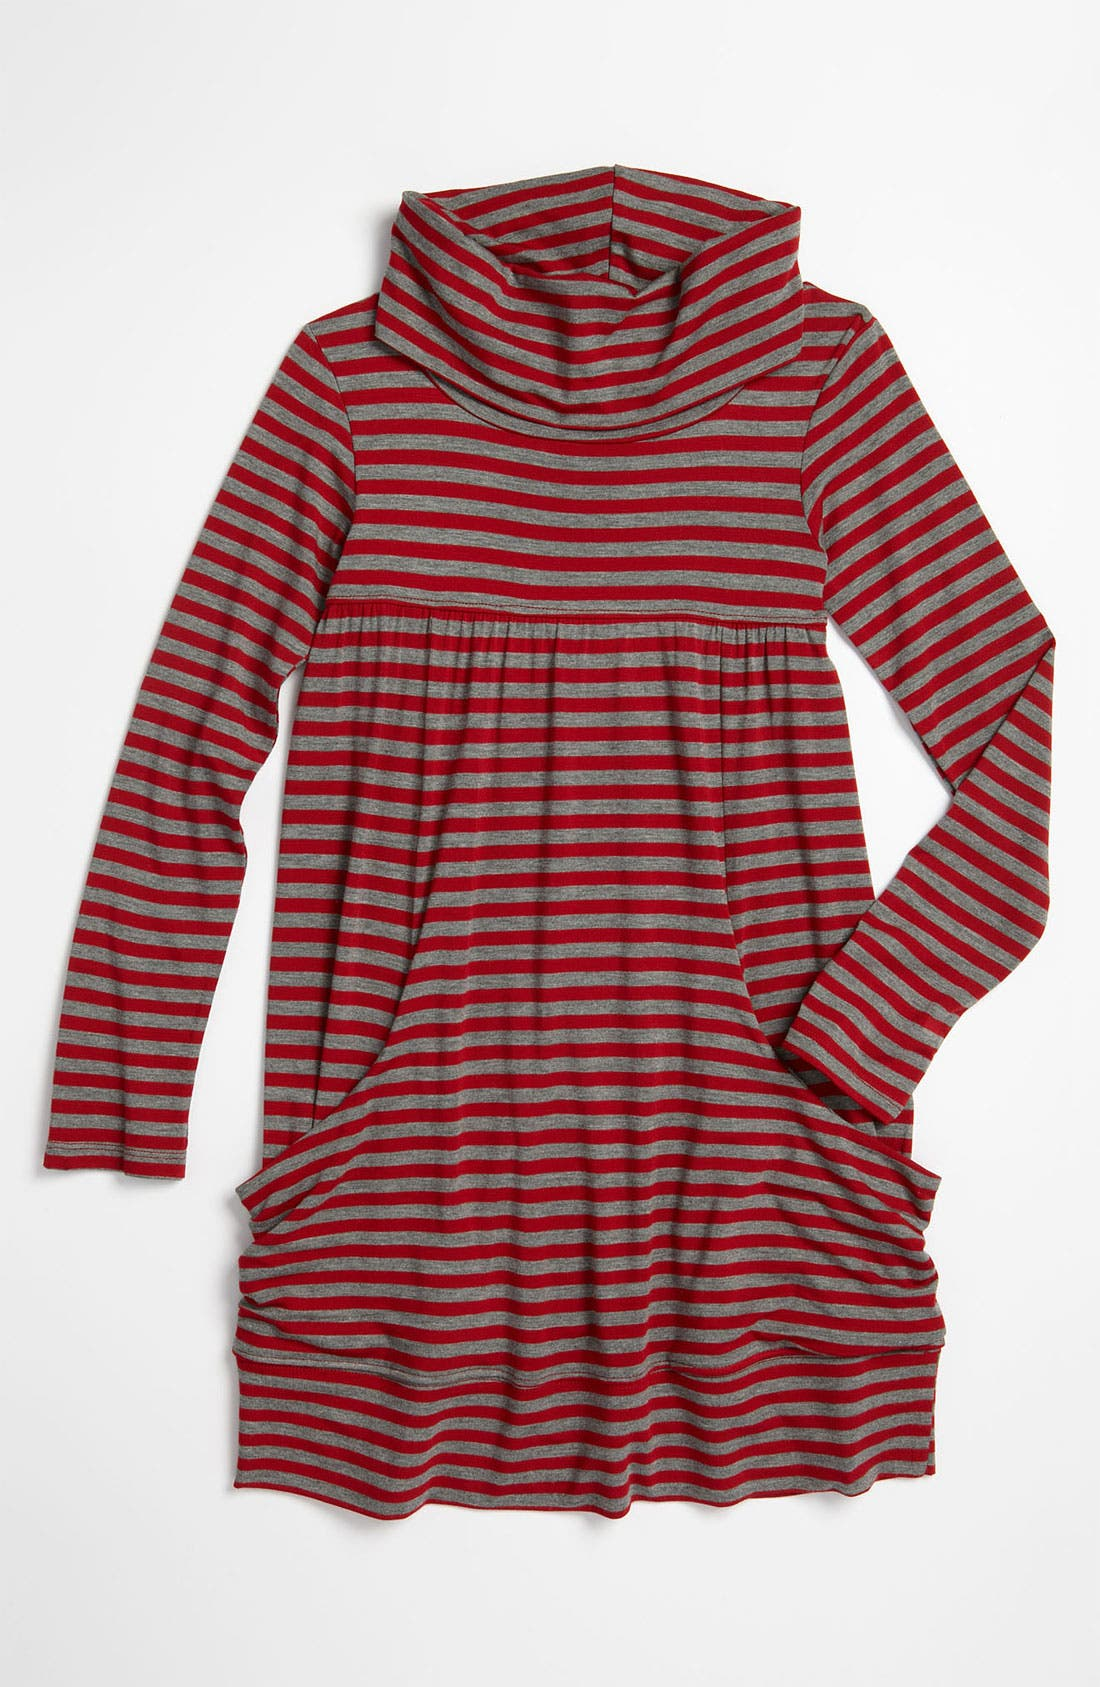 Main Image - United Colors of Benetton Kids Stripe Dress (Little Girls & Big Girls)